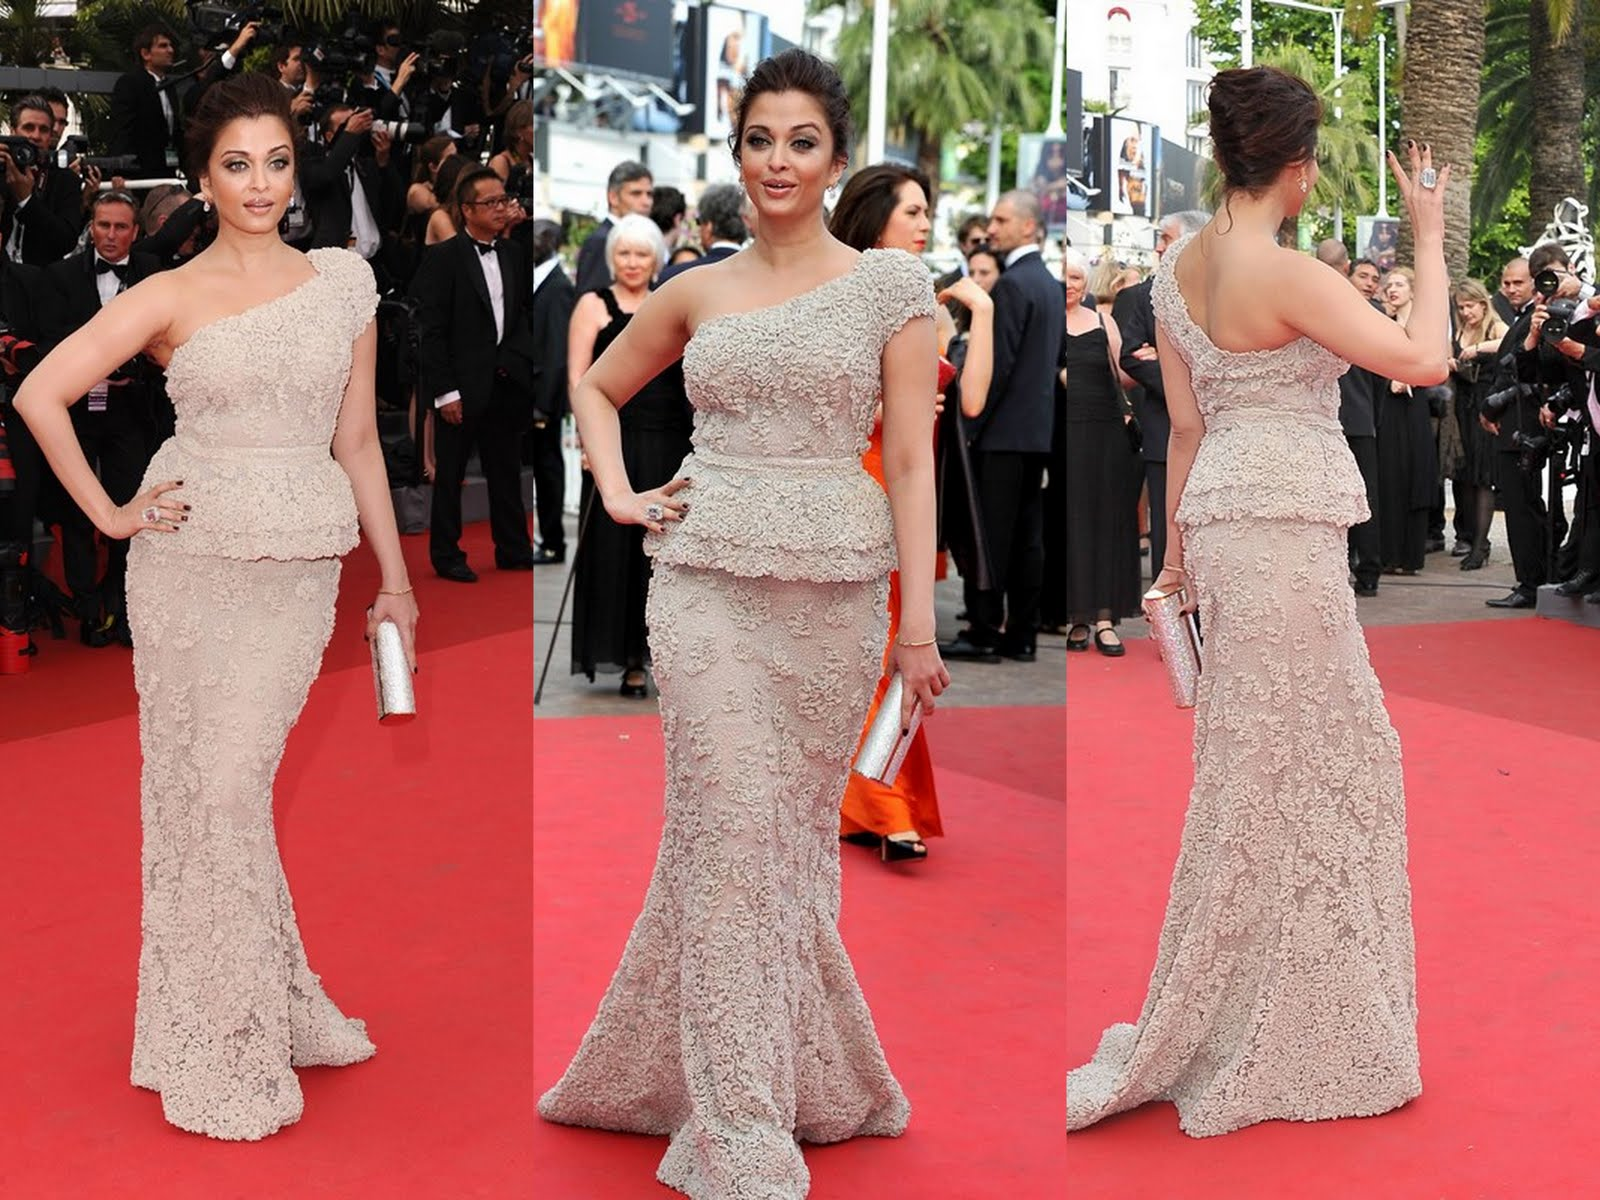 http://4.bp.blogspot.com/-aS0sMH5u8as/TcvMsmxQTvI/AAAAAAAAAnk/EReN6wnMuyw/s1600/Aishwarya-64th-Cannes-film-festival-May-2011.jpg